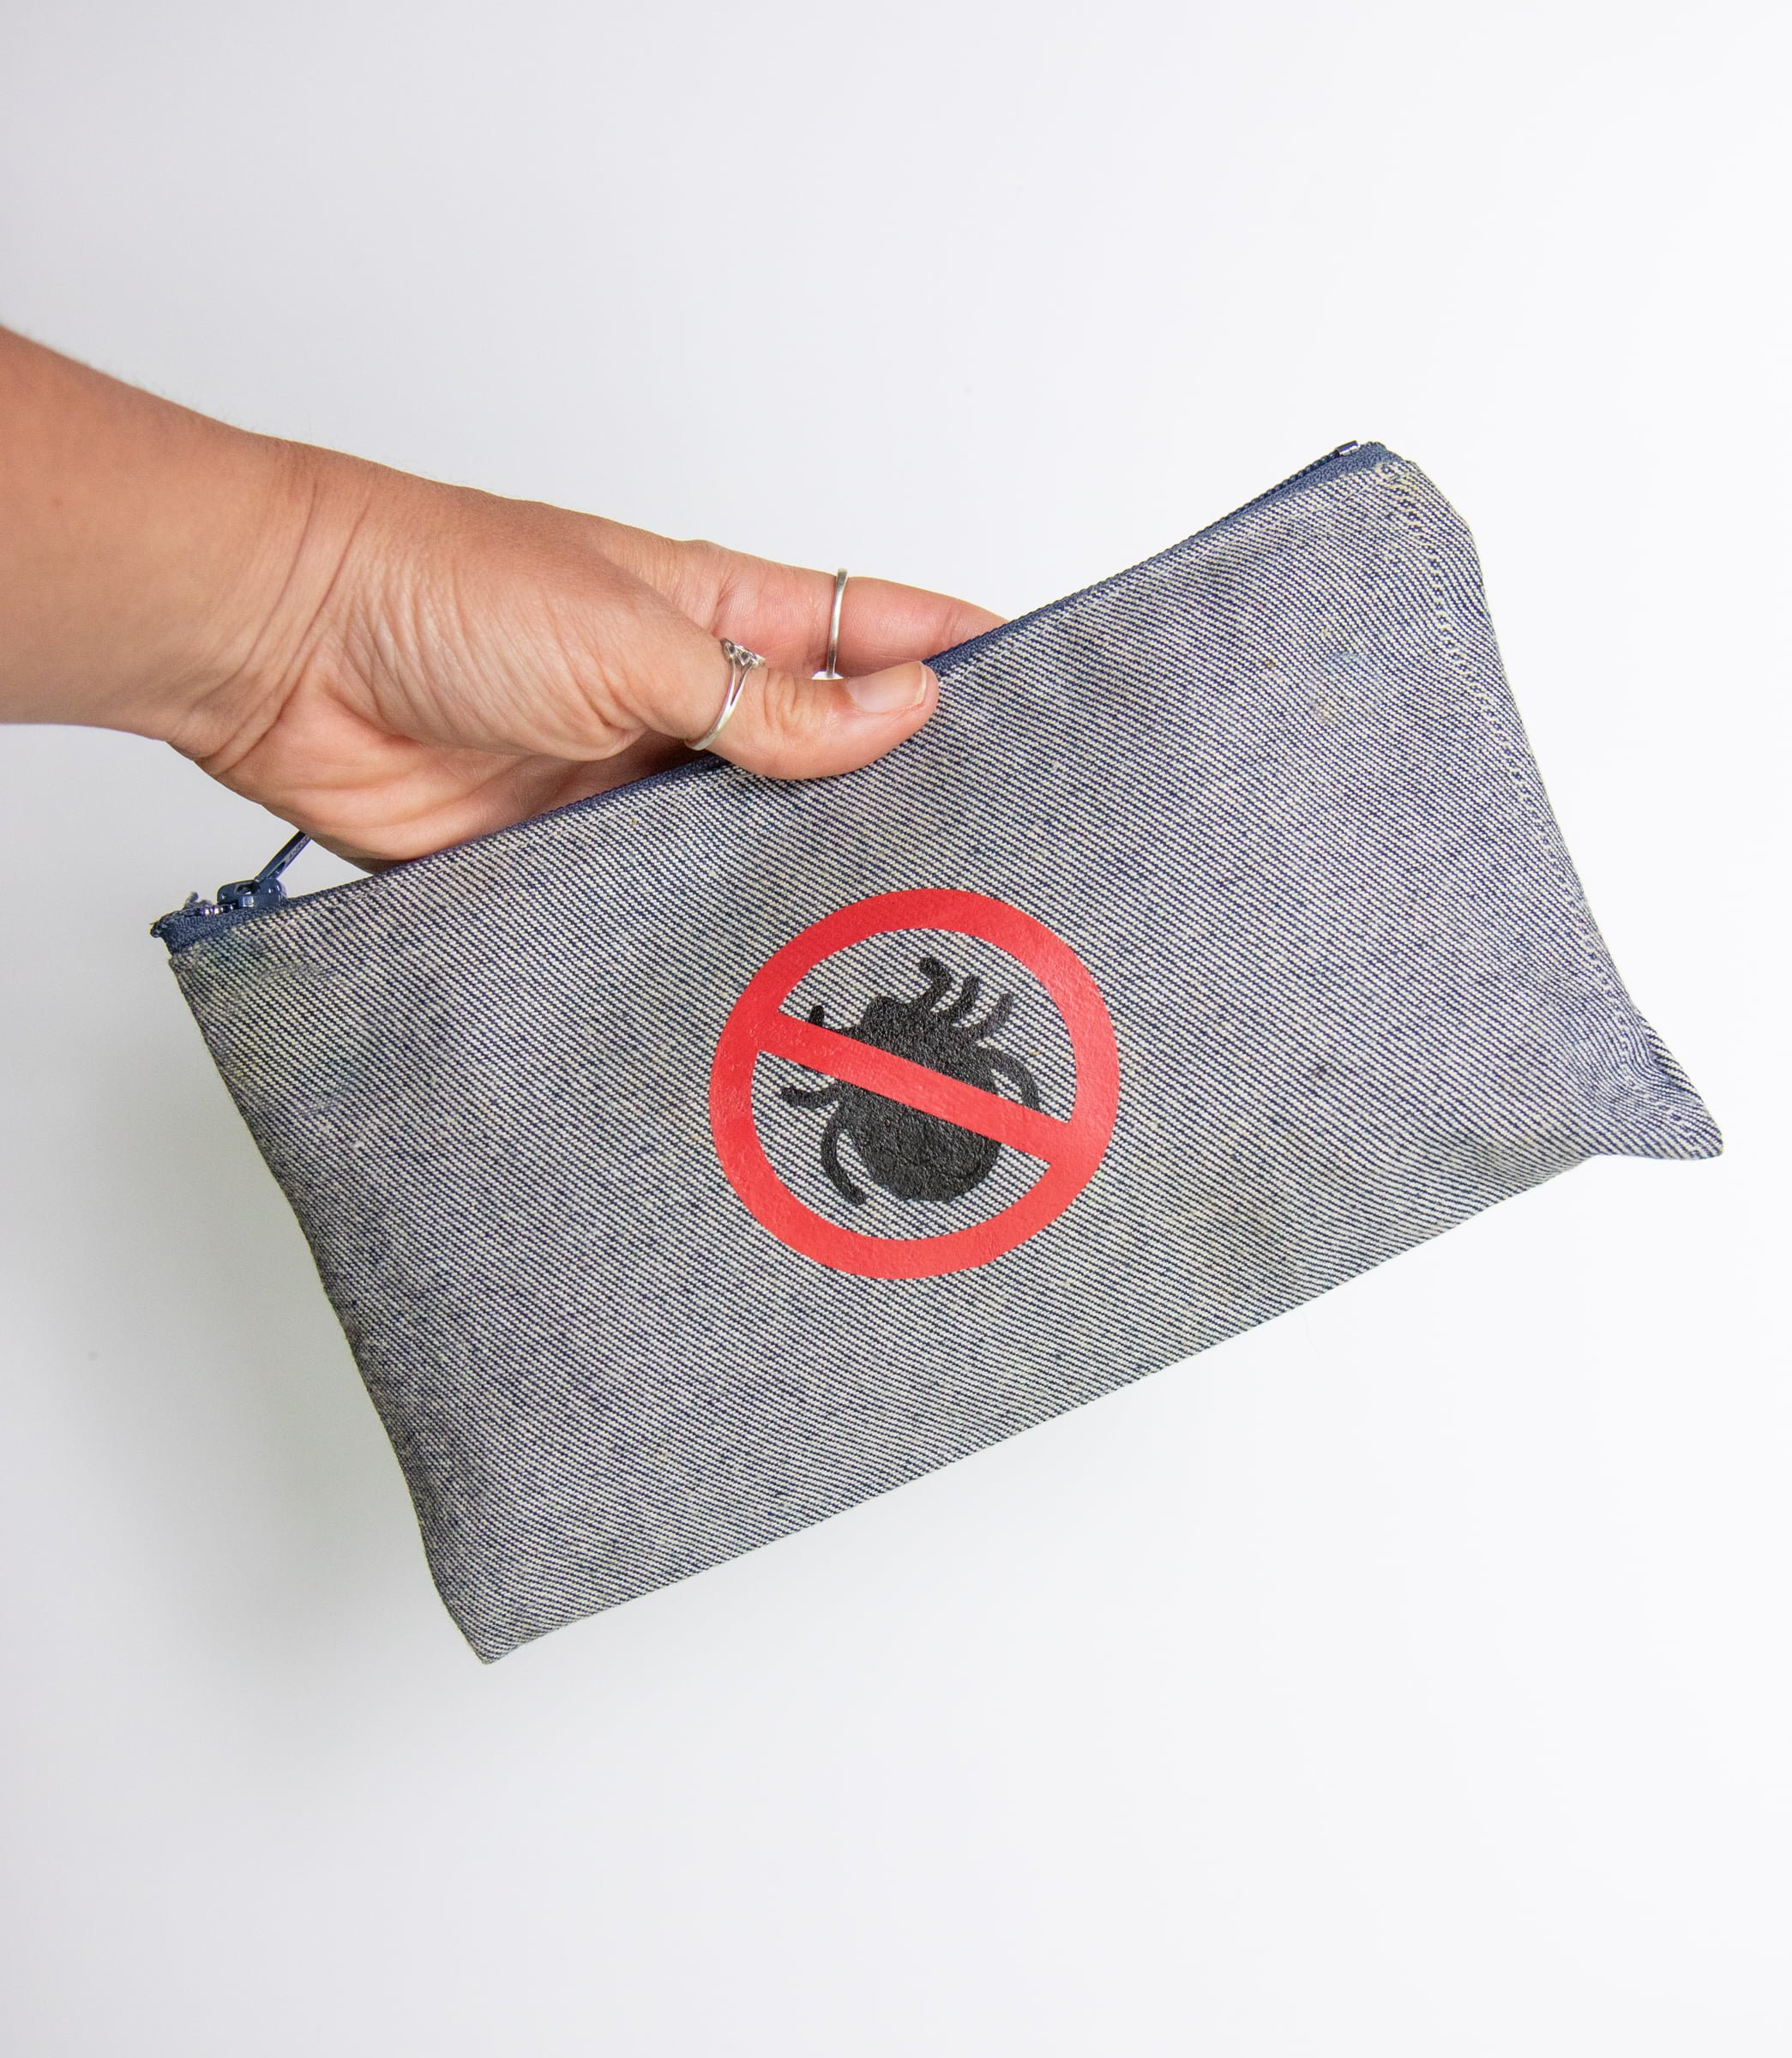 """Hand holding a gray pouch with a """"no ticks"""" label. The pouch contains a tick kit - everything you need to deal with a tick bite."""